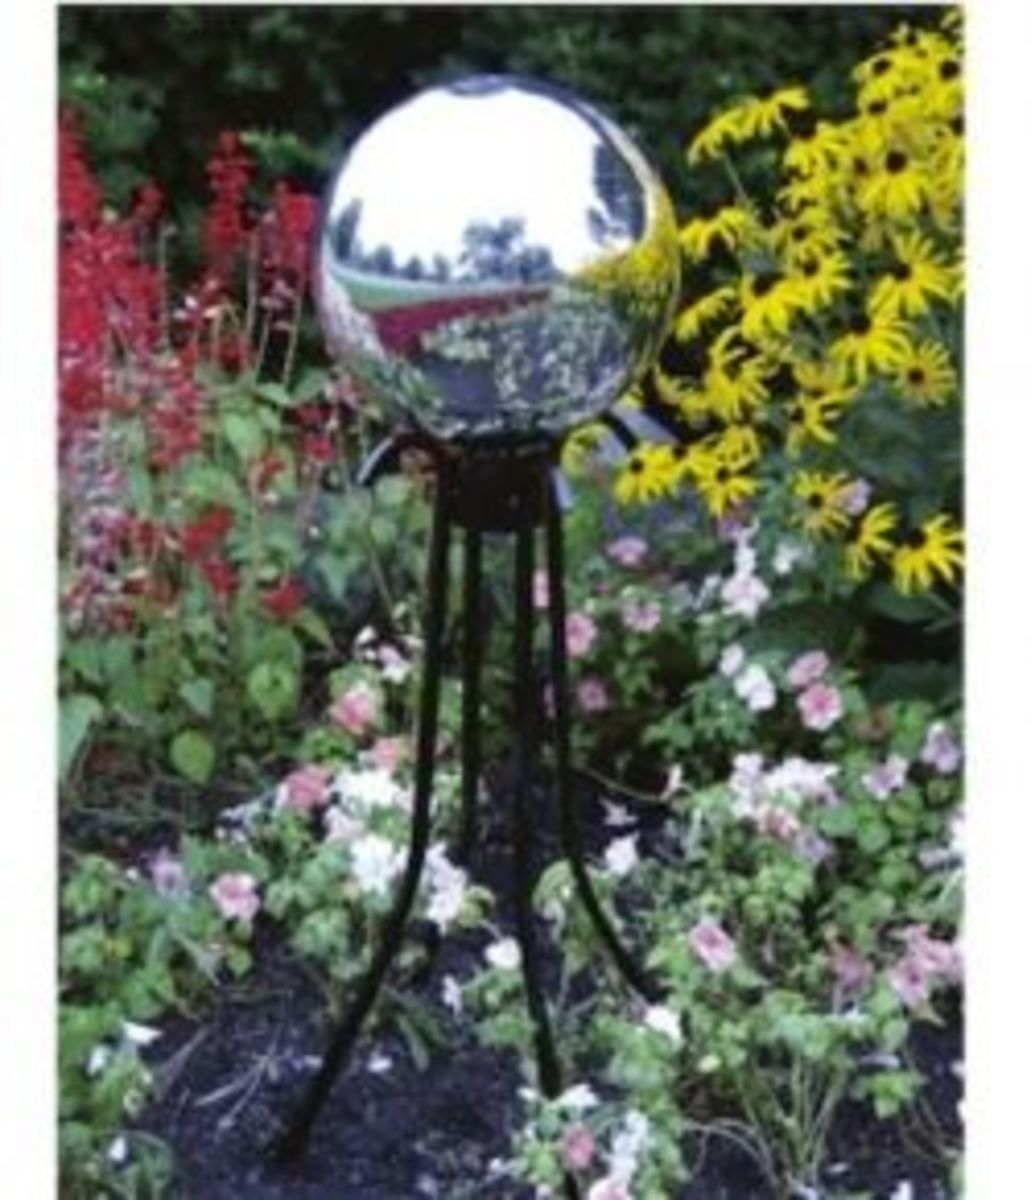 Globe and stand in Garden Setting